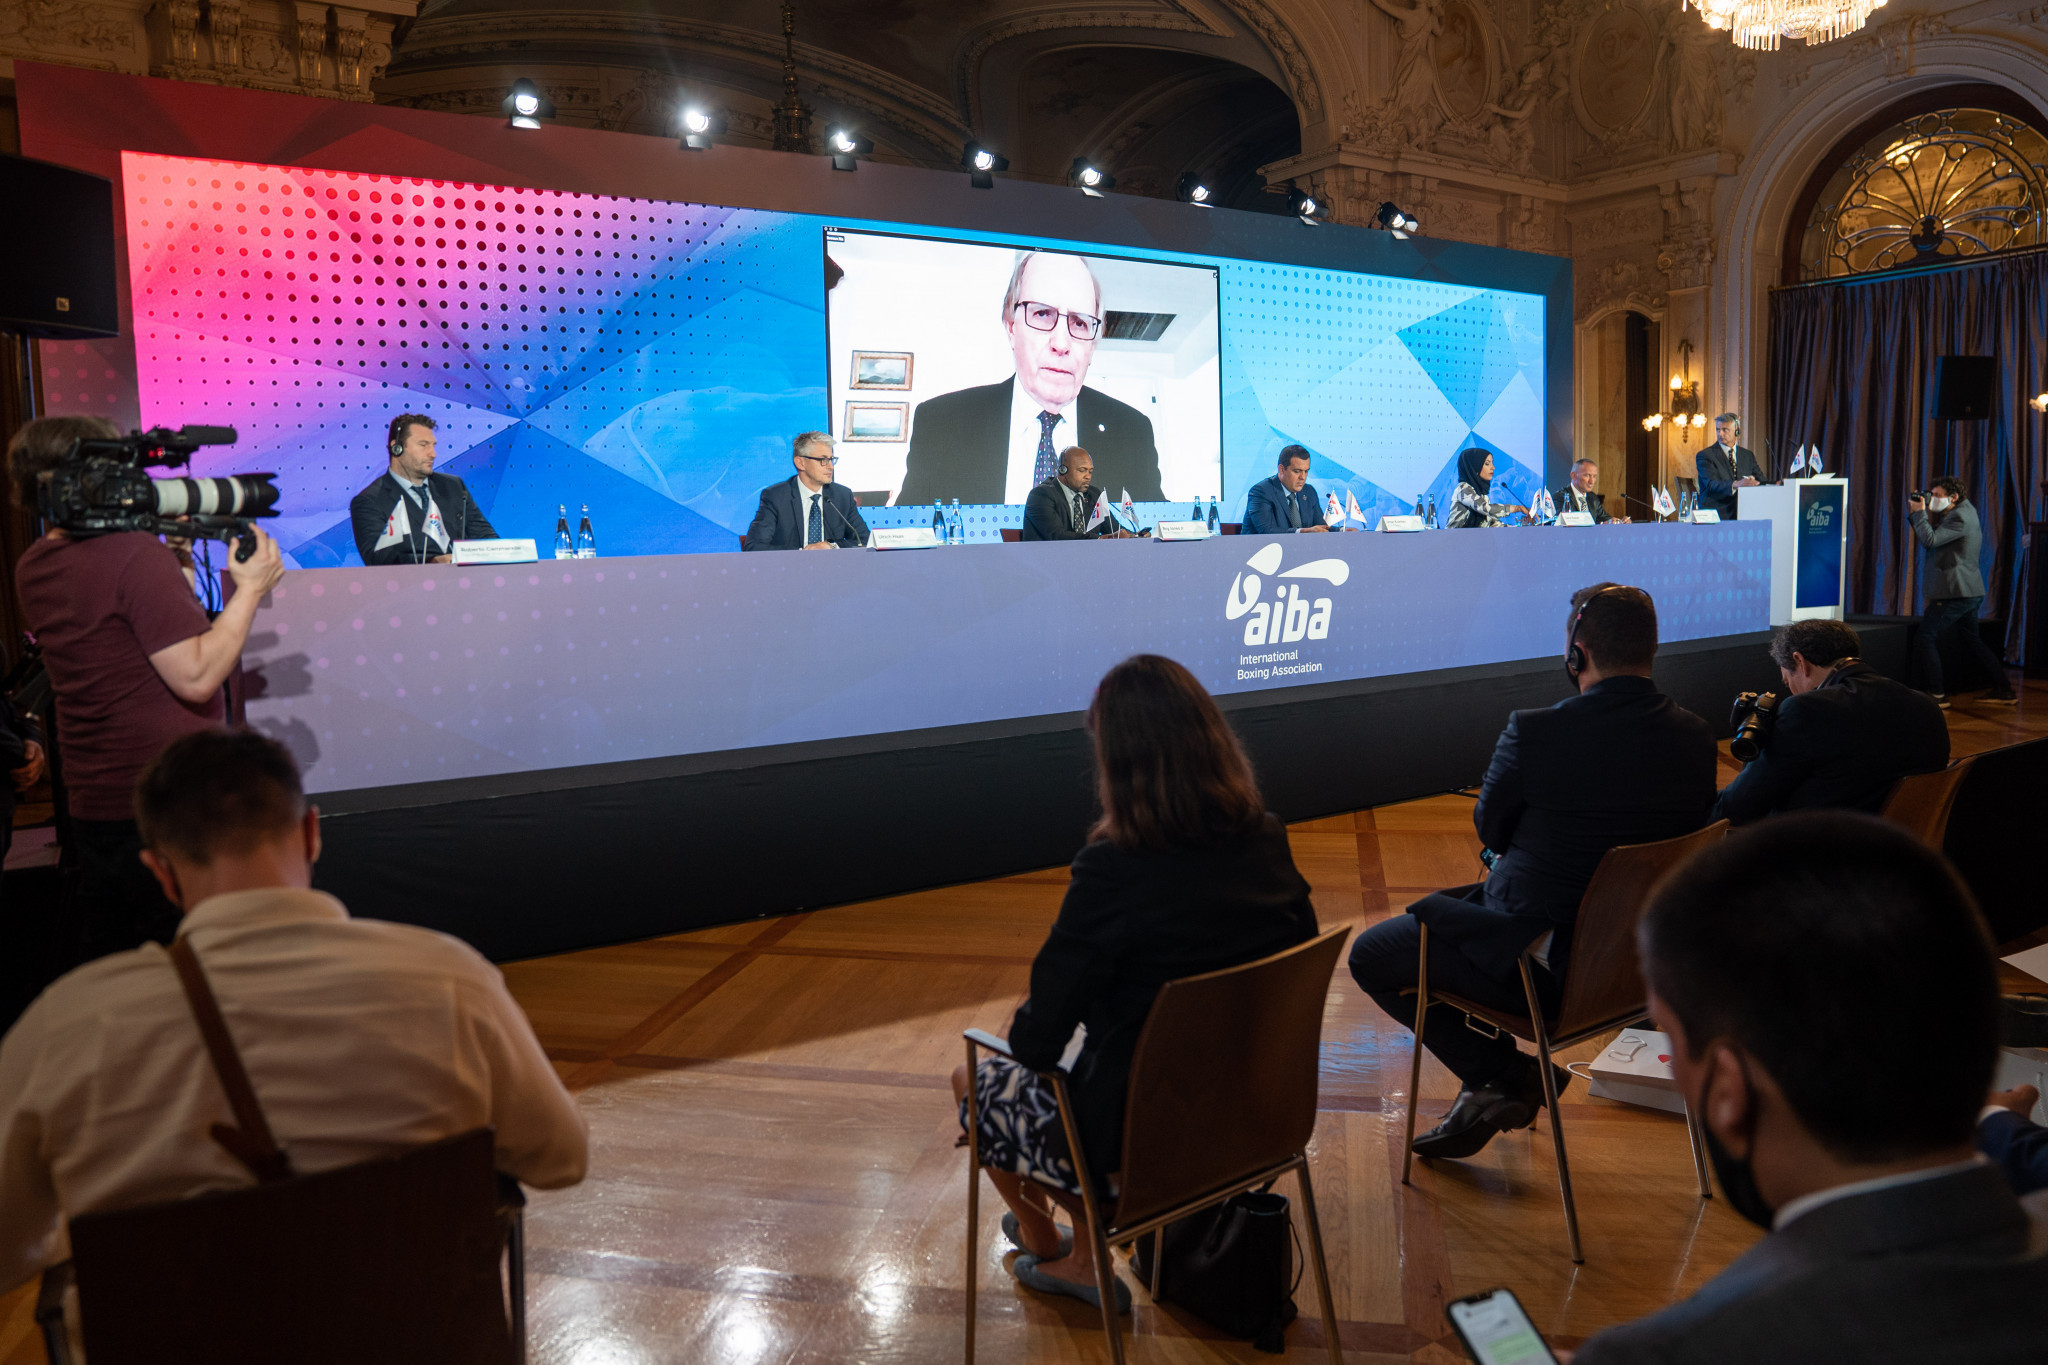 Richard McLaren, tasked with leading an investigation into judging in boxing, appeared at a press conference in Lausanne via video link ©AIBA